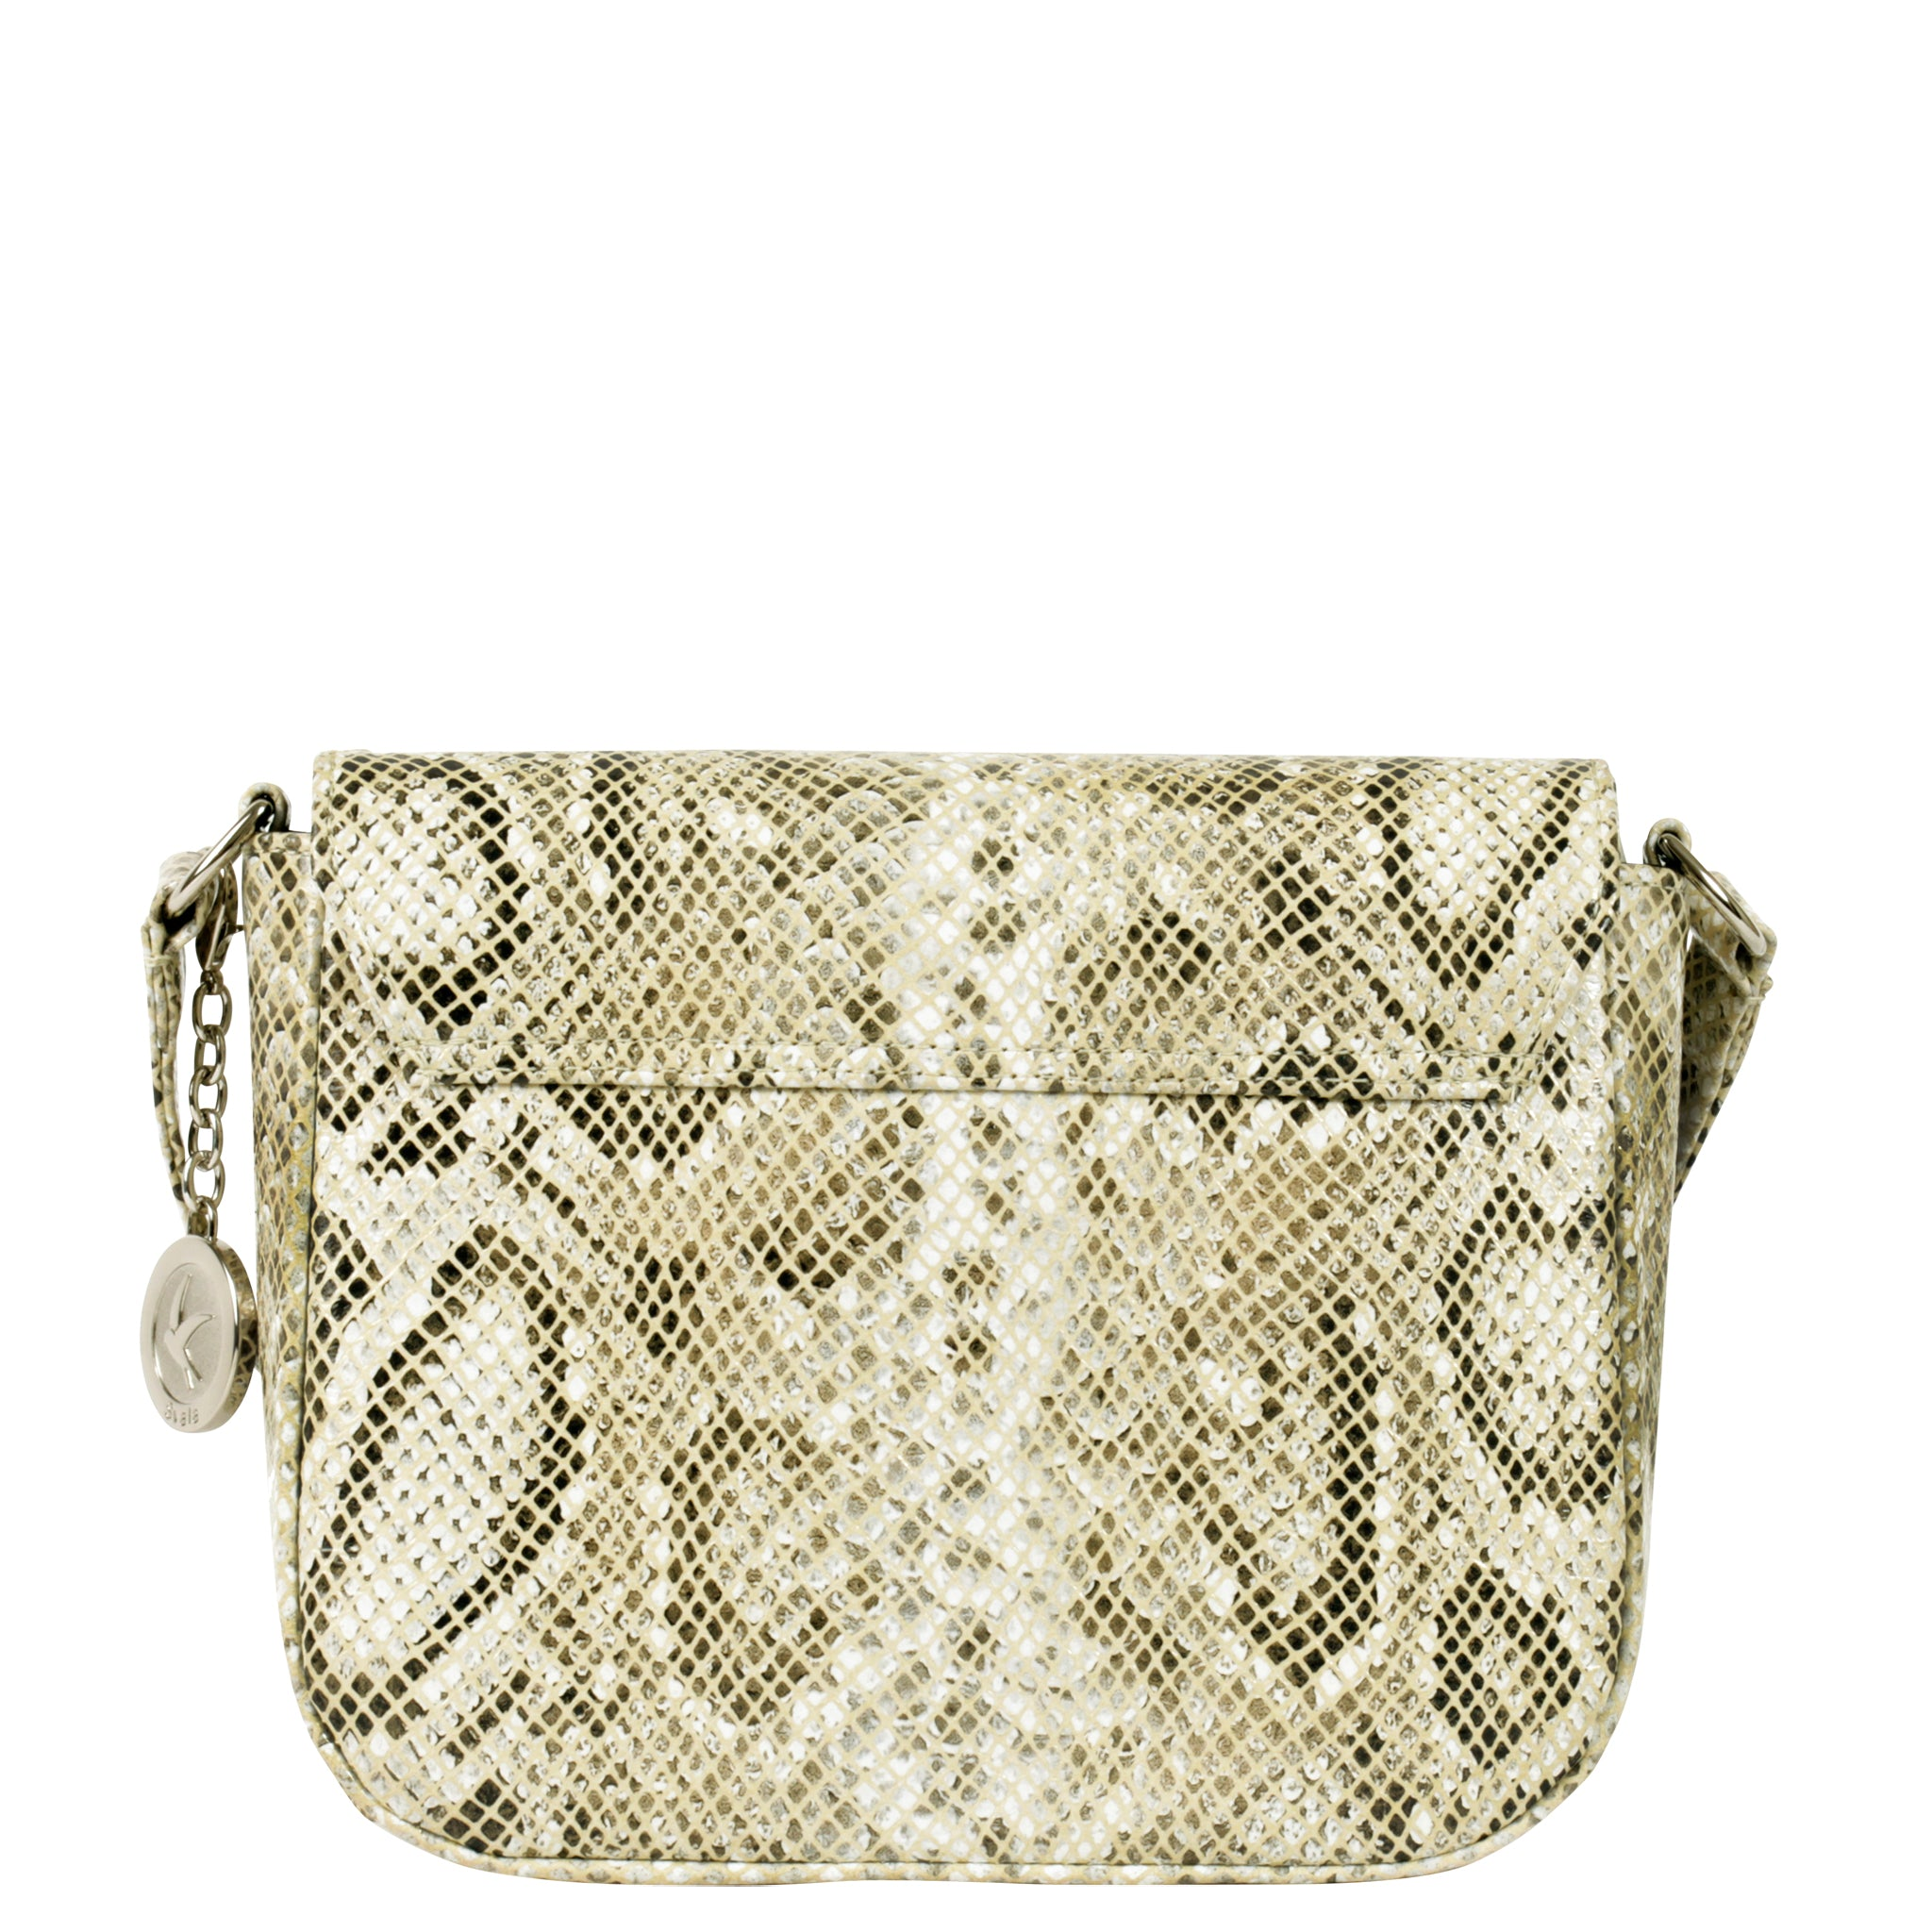 Svala vegan Tashi crossbody handbag in cream python